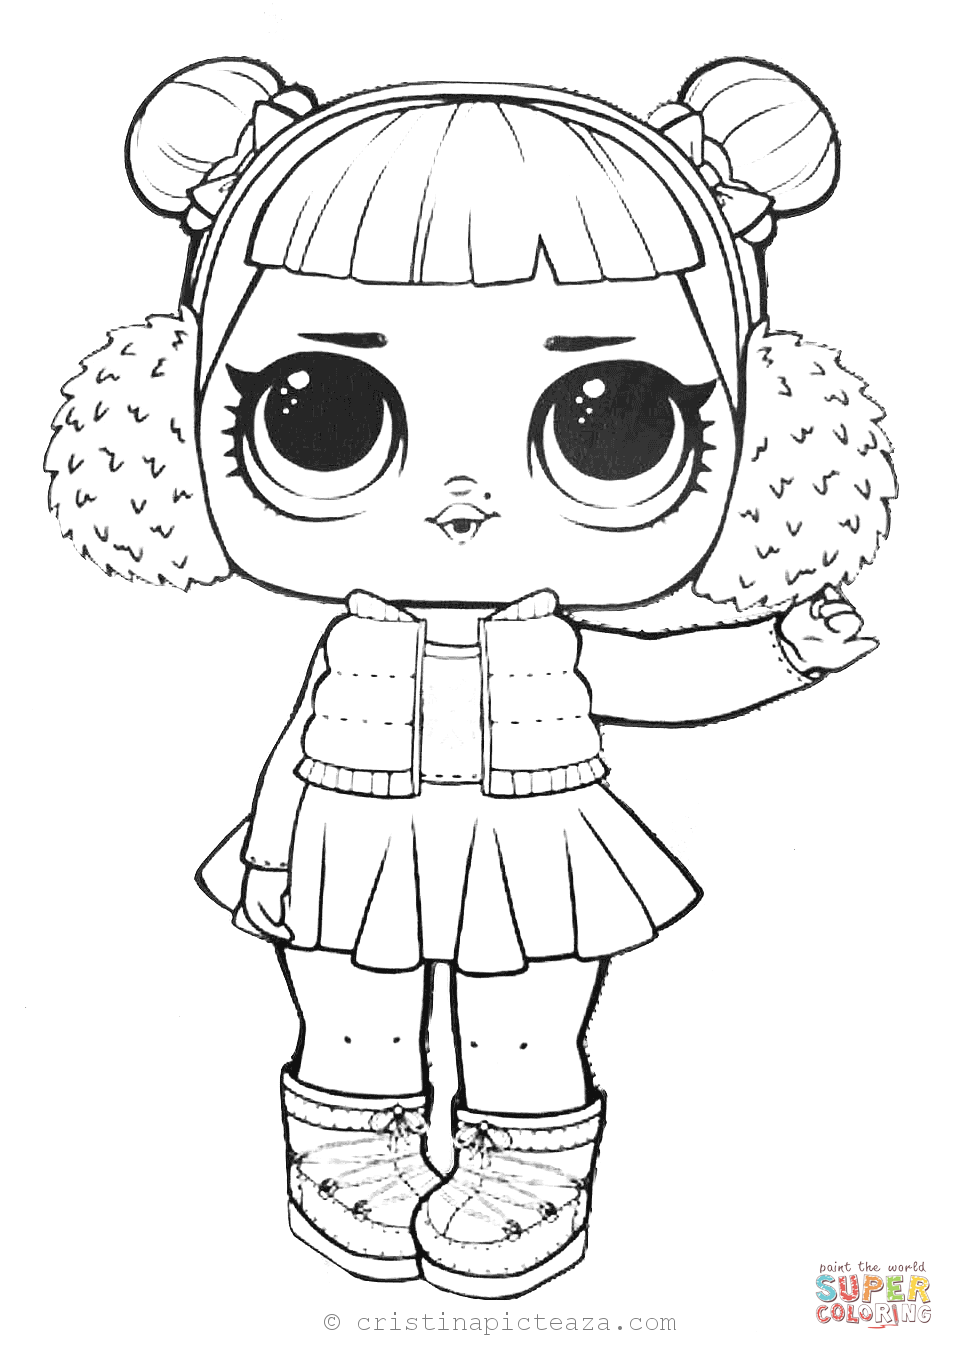 dolls coloring pages lol coloring pages big eyes doll free printable coloring pages dolls coloring